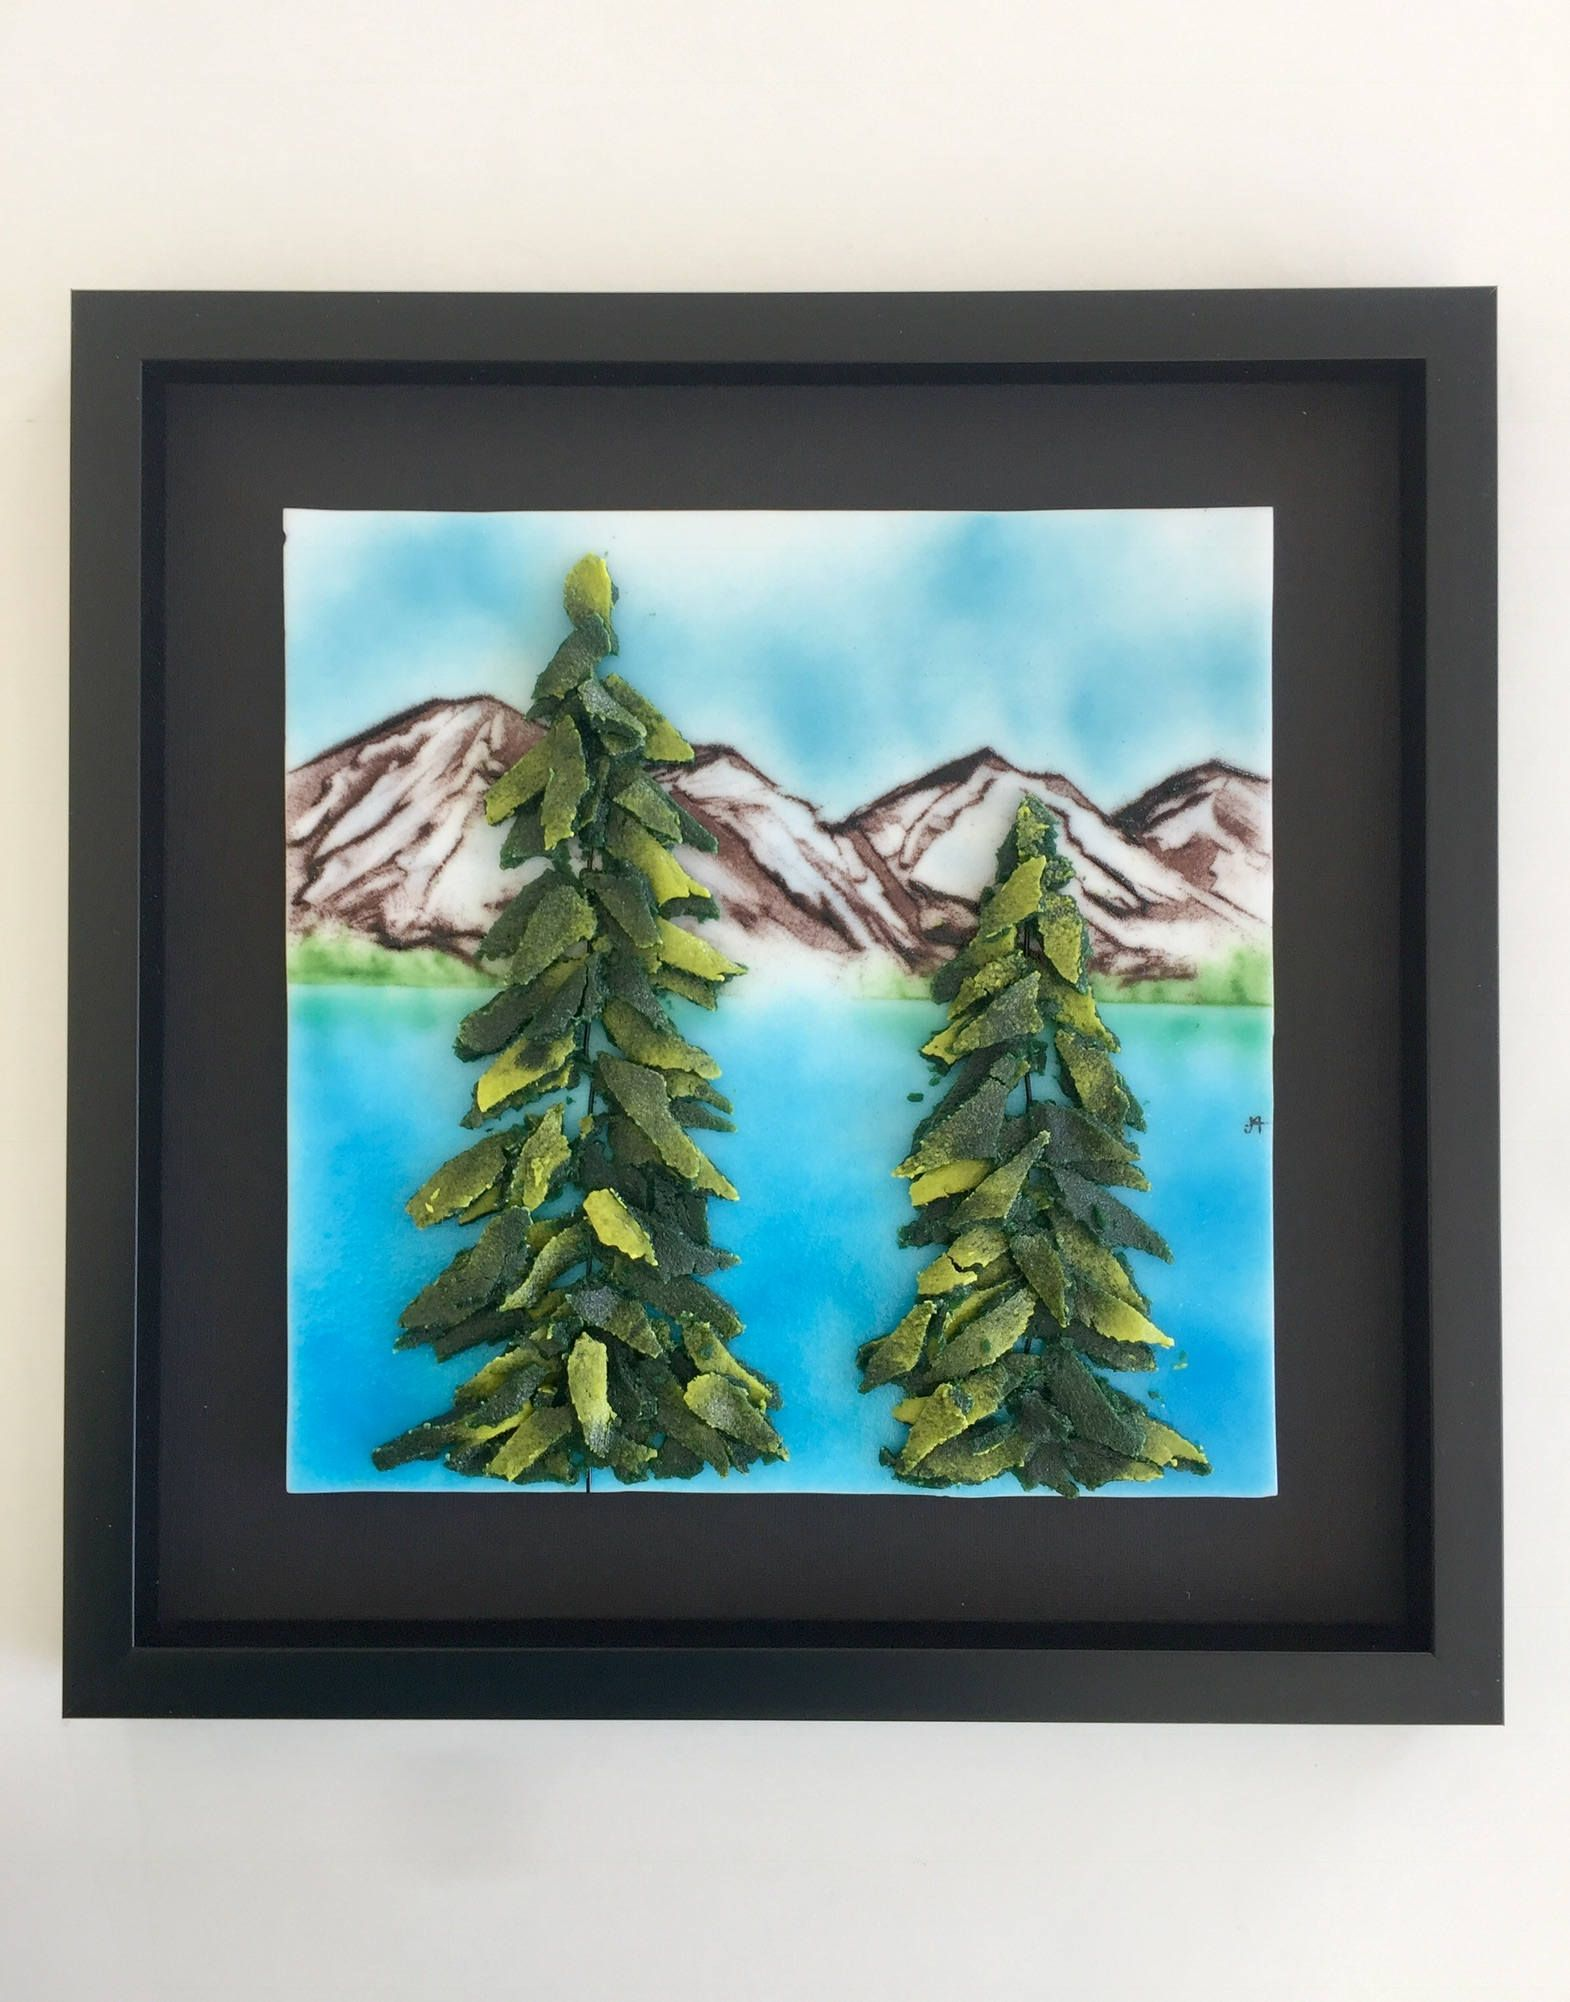 Fused Gl Handmade Mountains Wall Panel Art